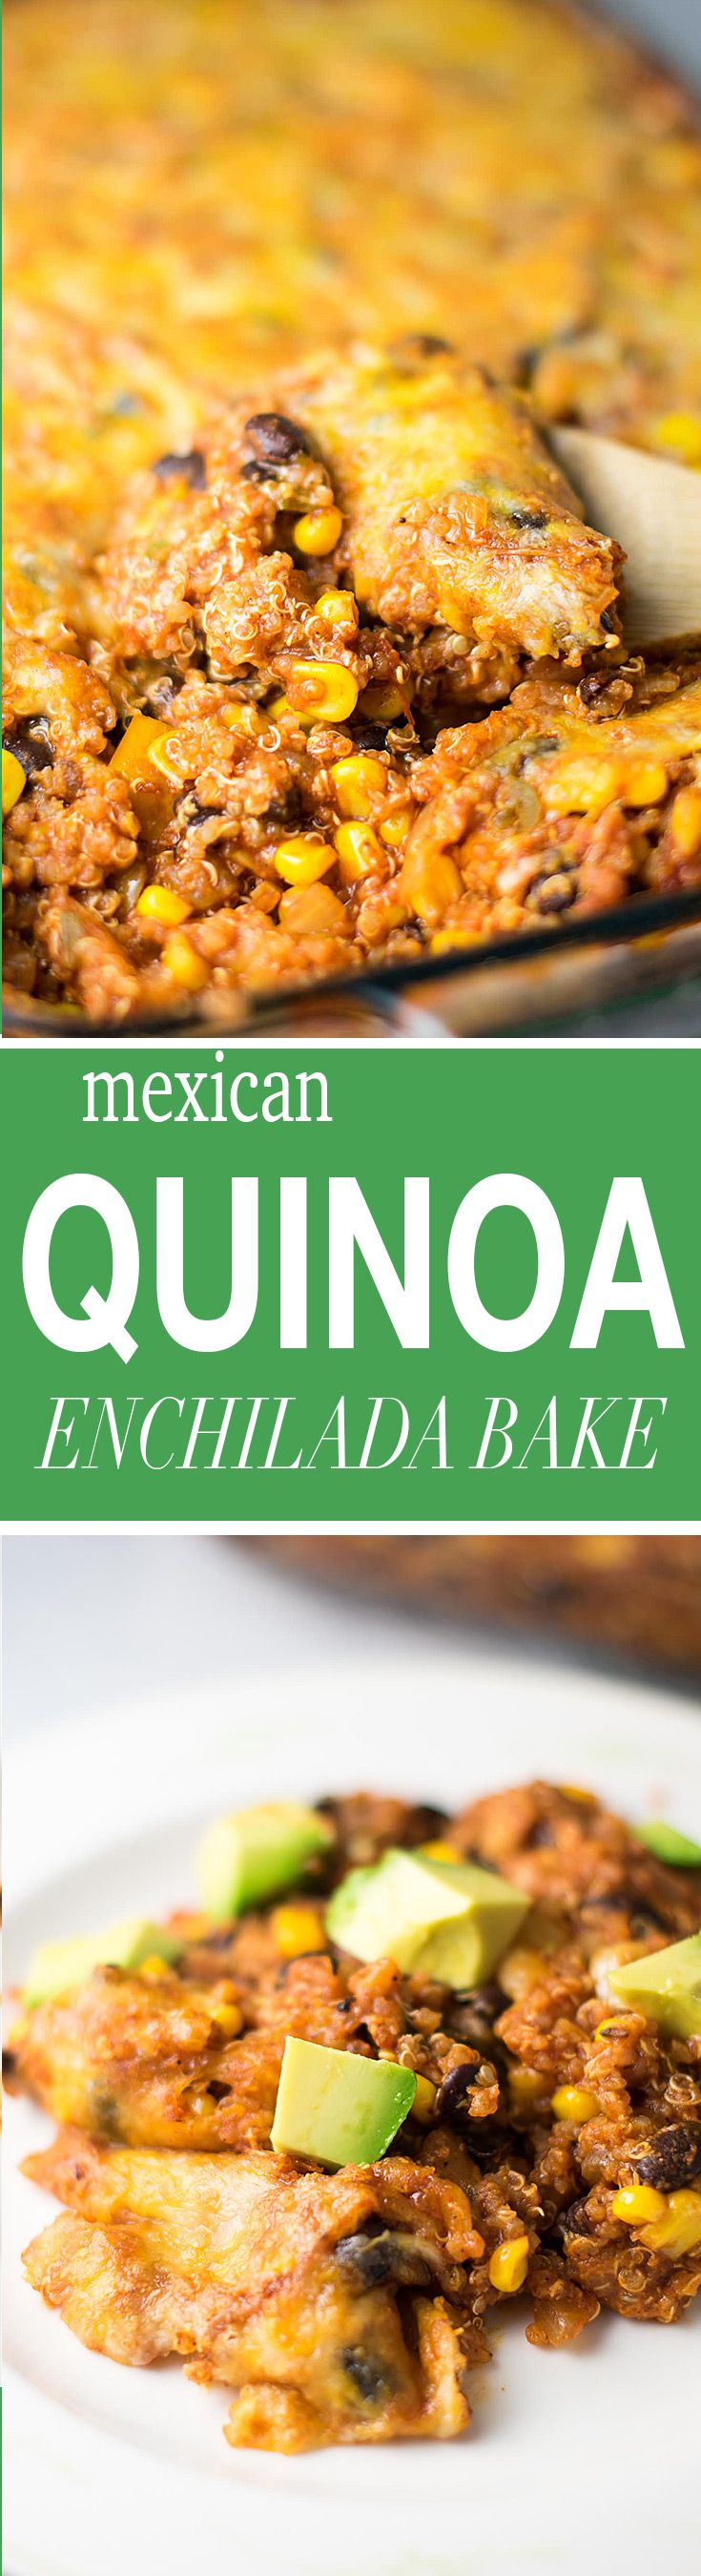 Vegetarian mexican quinoa enchilada bake recipe made with lots of fresh vegetables and grated mexican cheese. Serve with sour cream and tortilla chips!